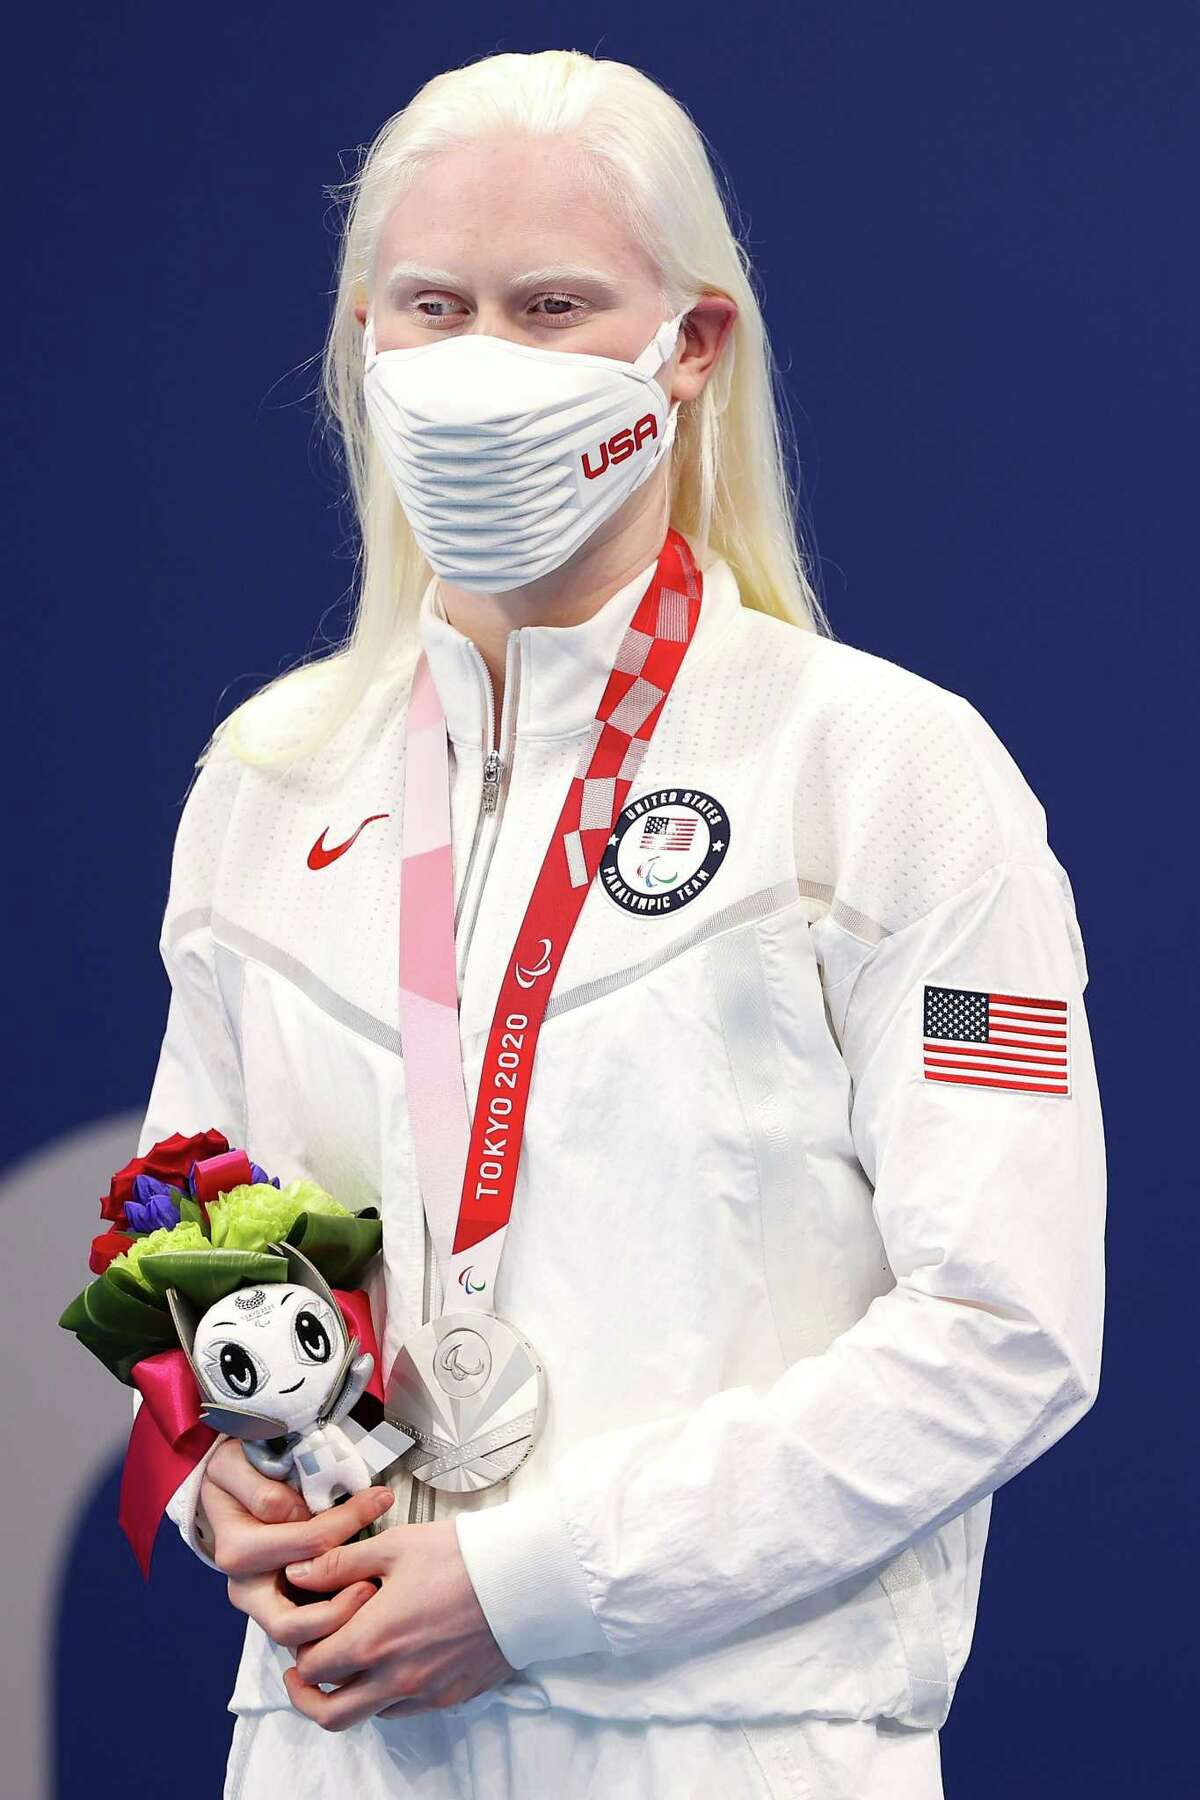 Silver medalist Colleen Young of the United States poses after the Women's 200m Individual Medley-SM13 on day 6 of the Tokyo 2020 Paralympic Games at Tokyo Aquatics Centre on Monday.